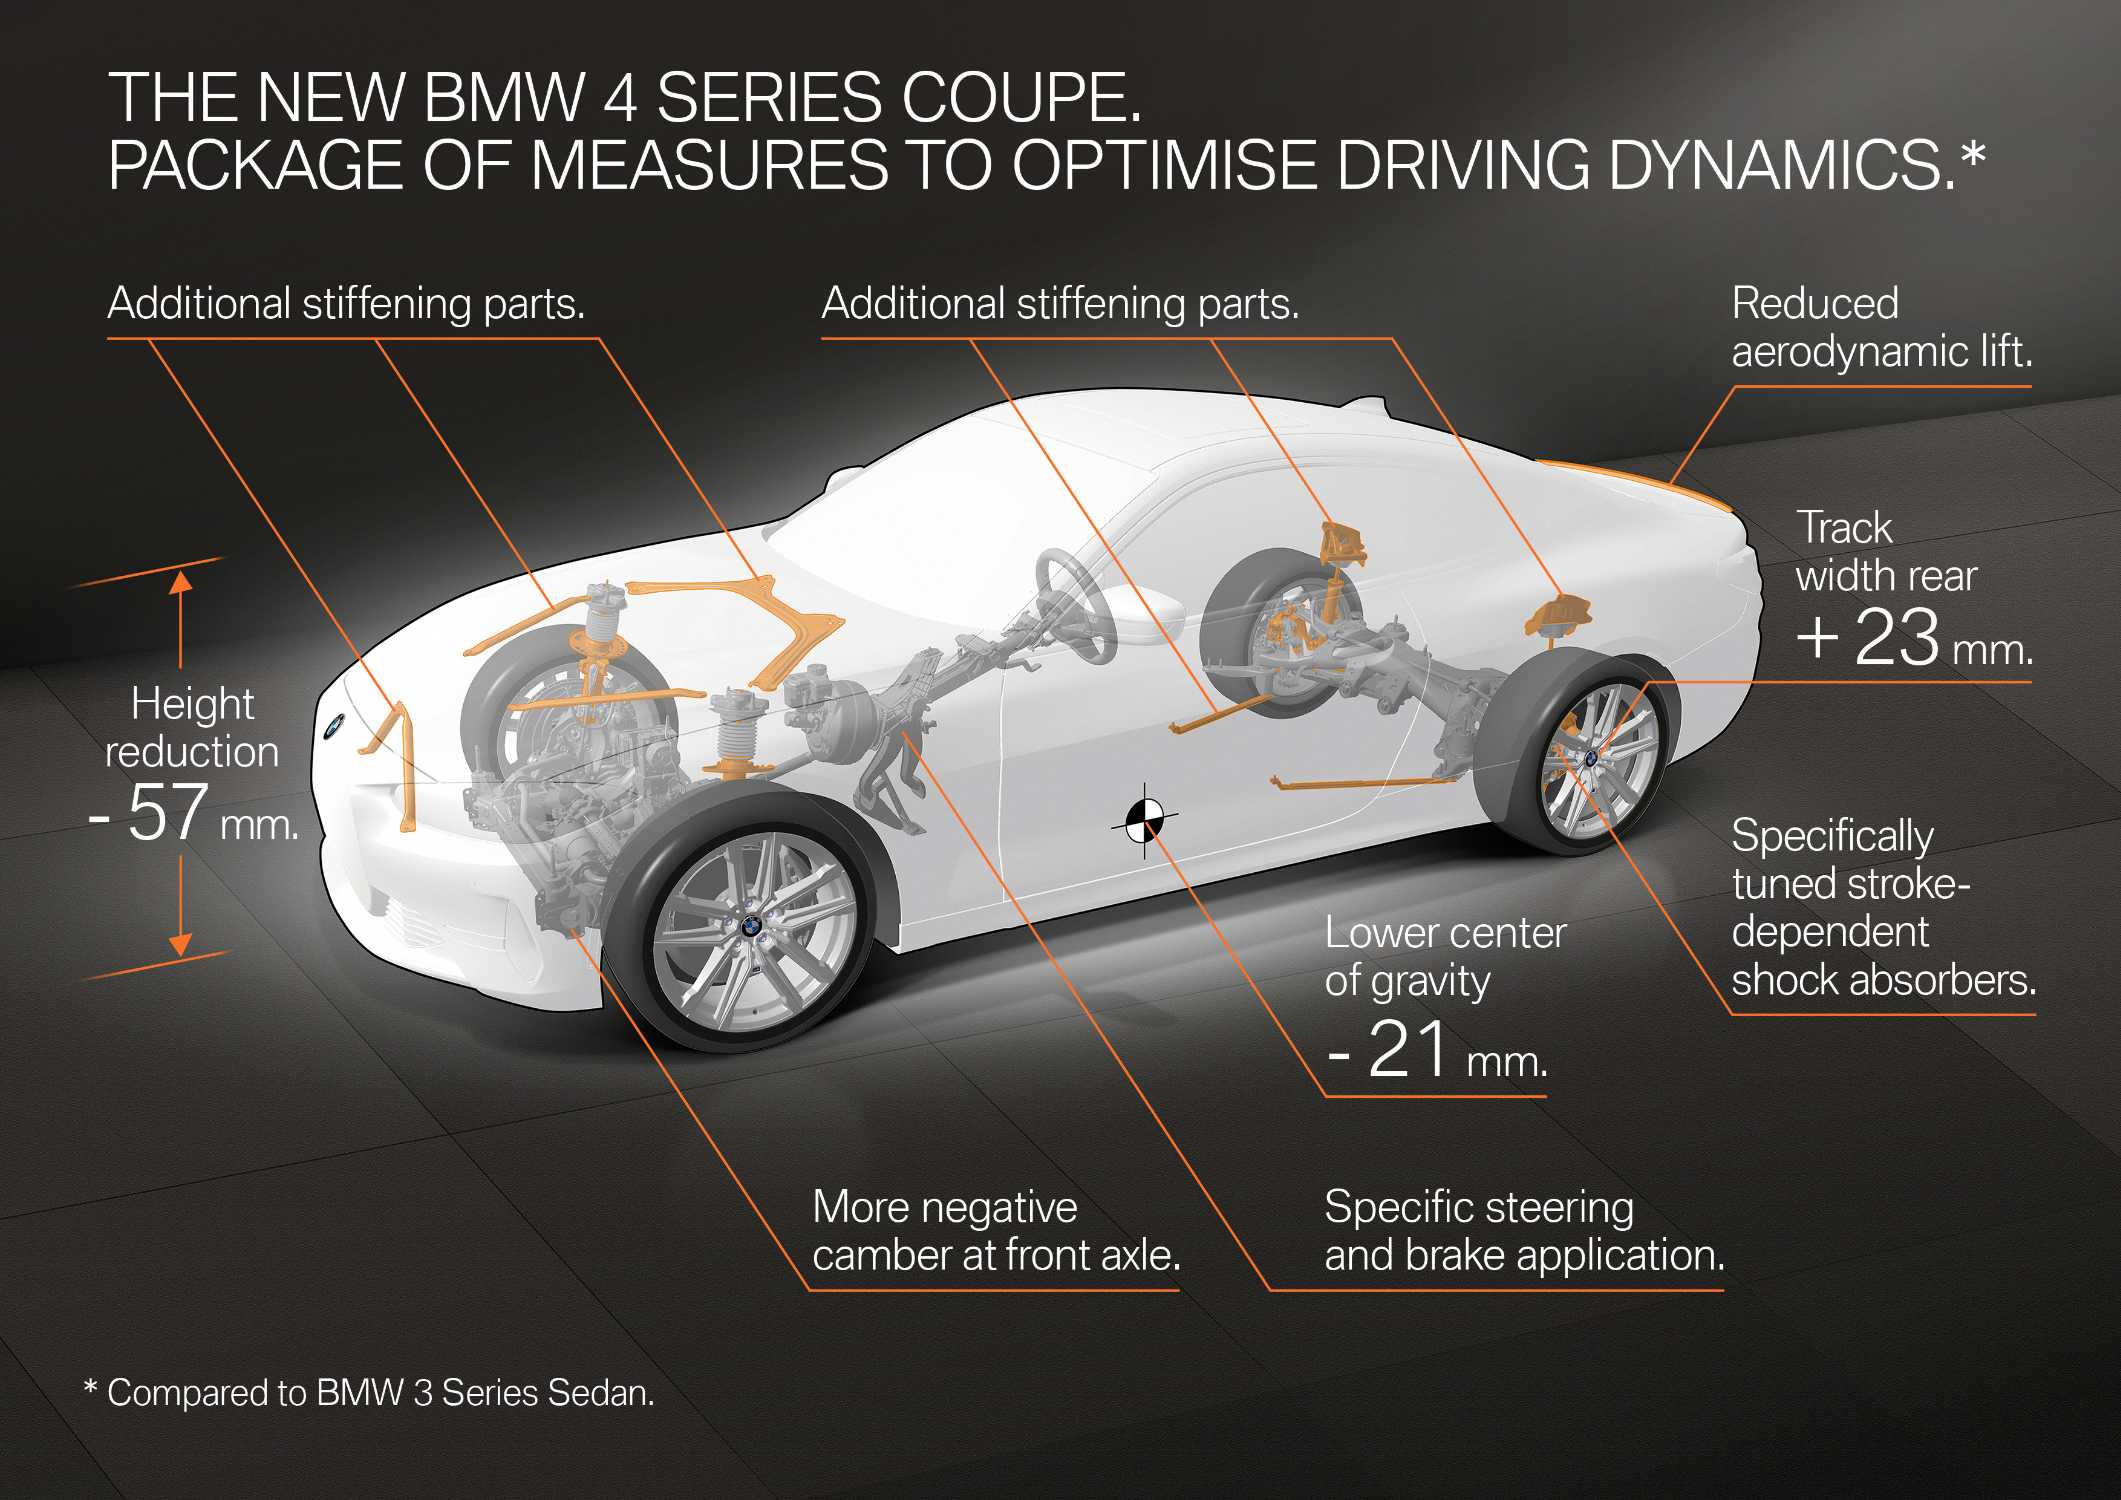 The new BMW 4 Series Coupe. Package of measures to optimise driving dynamics (04/2020).